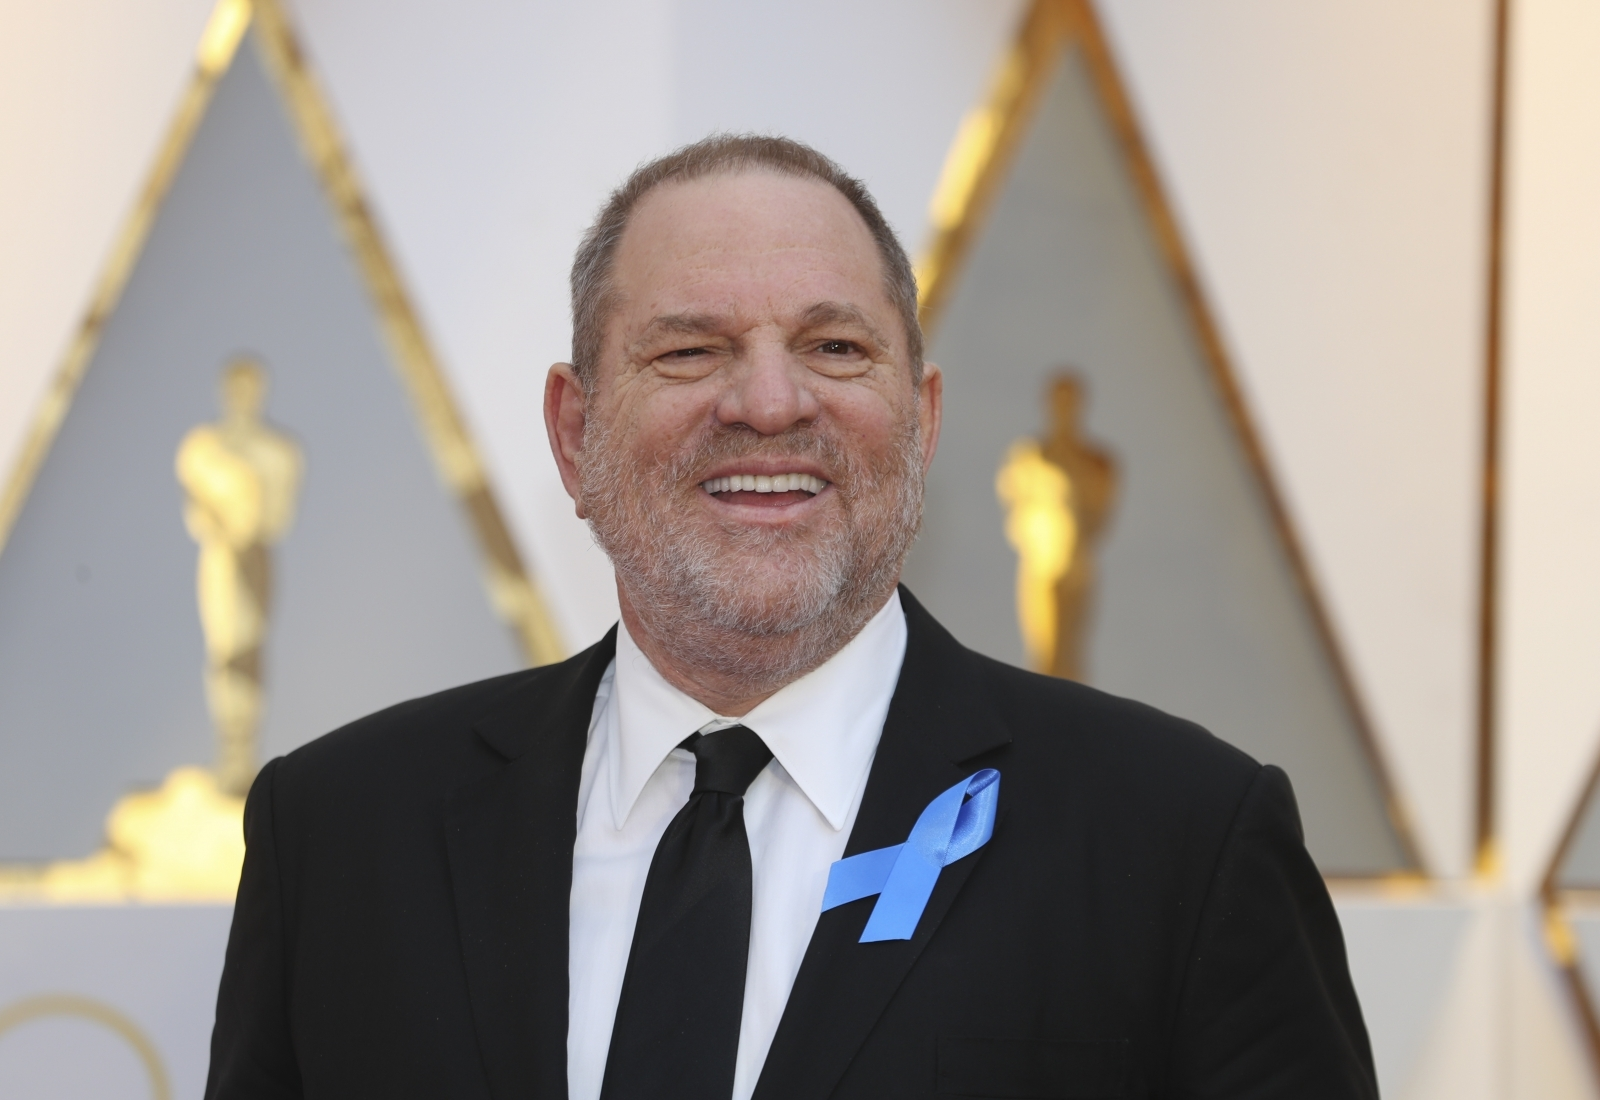 Weinstein Co Board Ousts Harvey Weinstein After Harassment Allegations